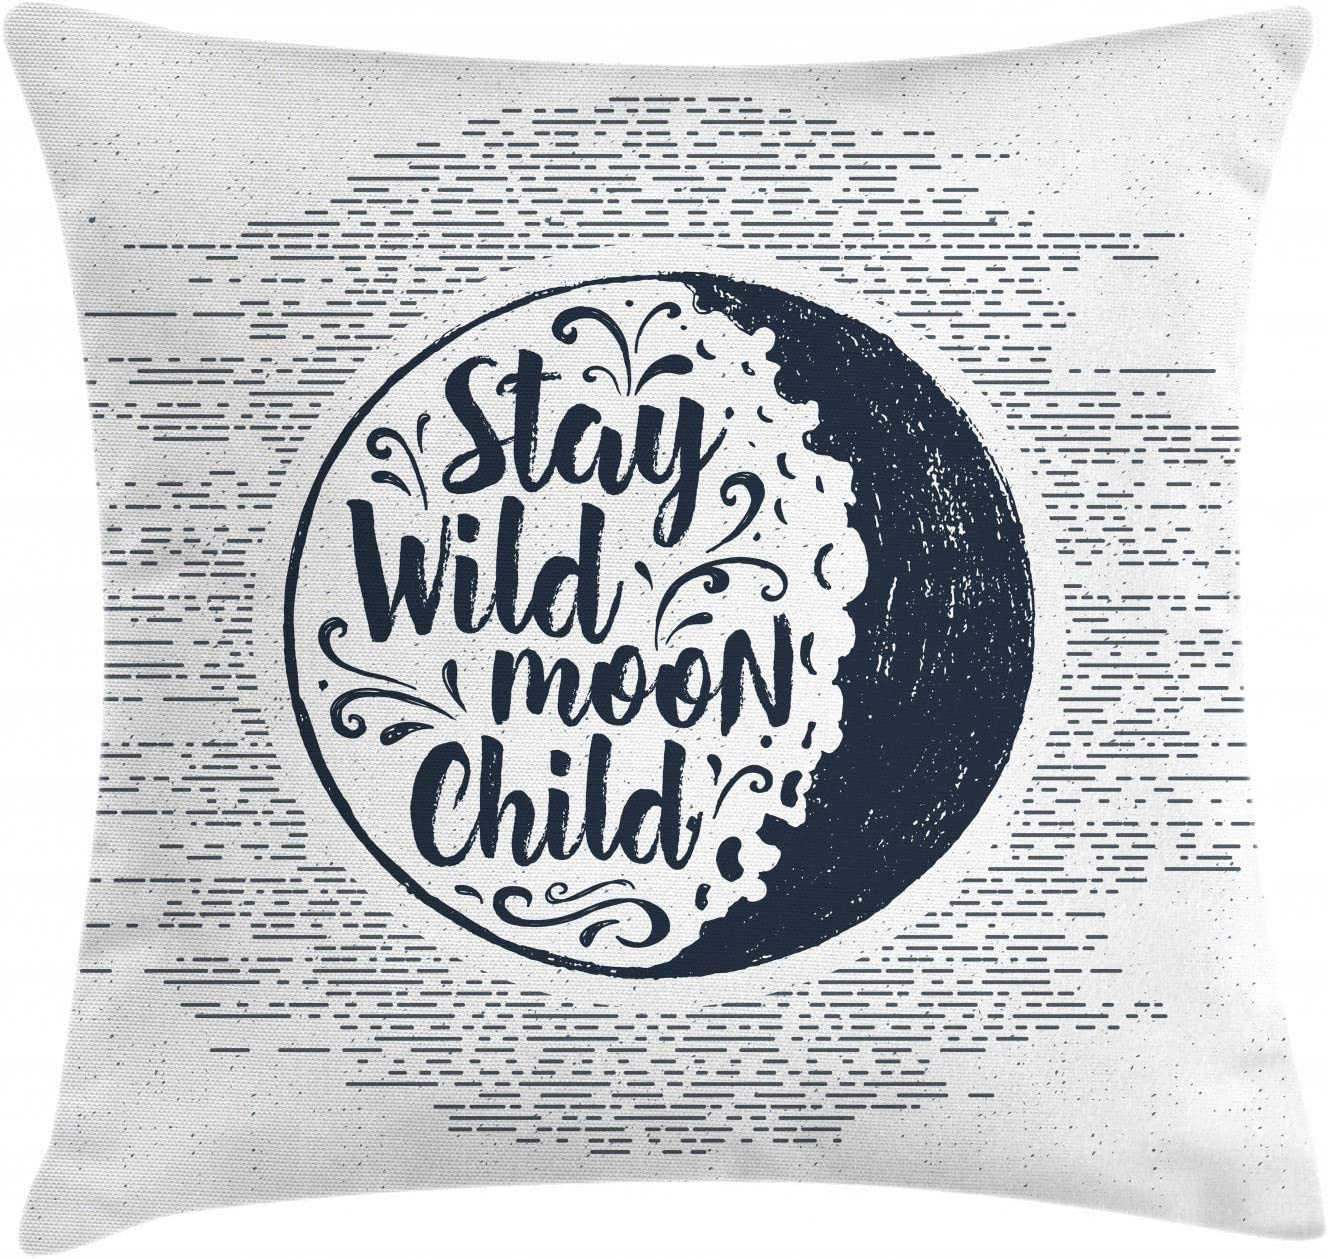 Amazon Com Ambesonne Stay Wild Moon Child Throw Pillow Cushion Cover Words In A Circle With Curls And Dashed Lines Decorative Square Accent Pillow Case 18 X 18 Dark Night Blue Pale Grey